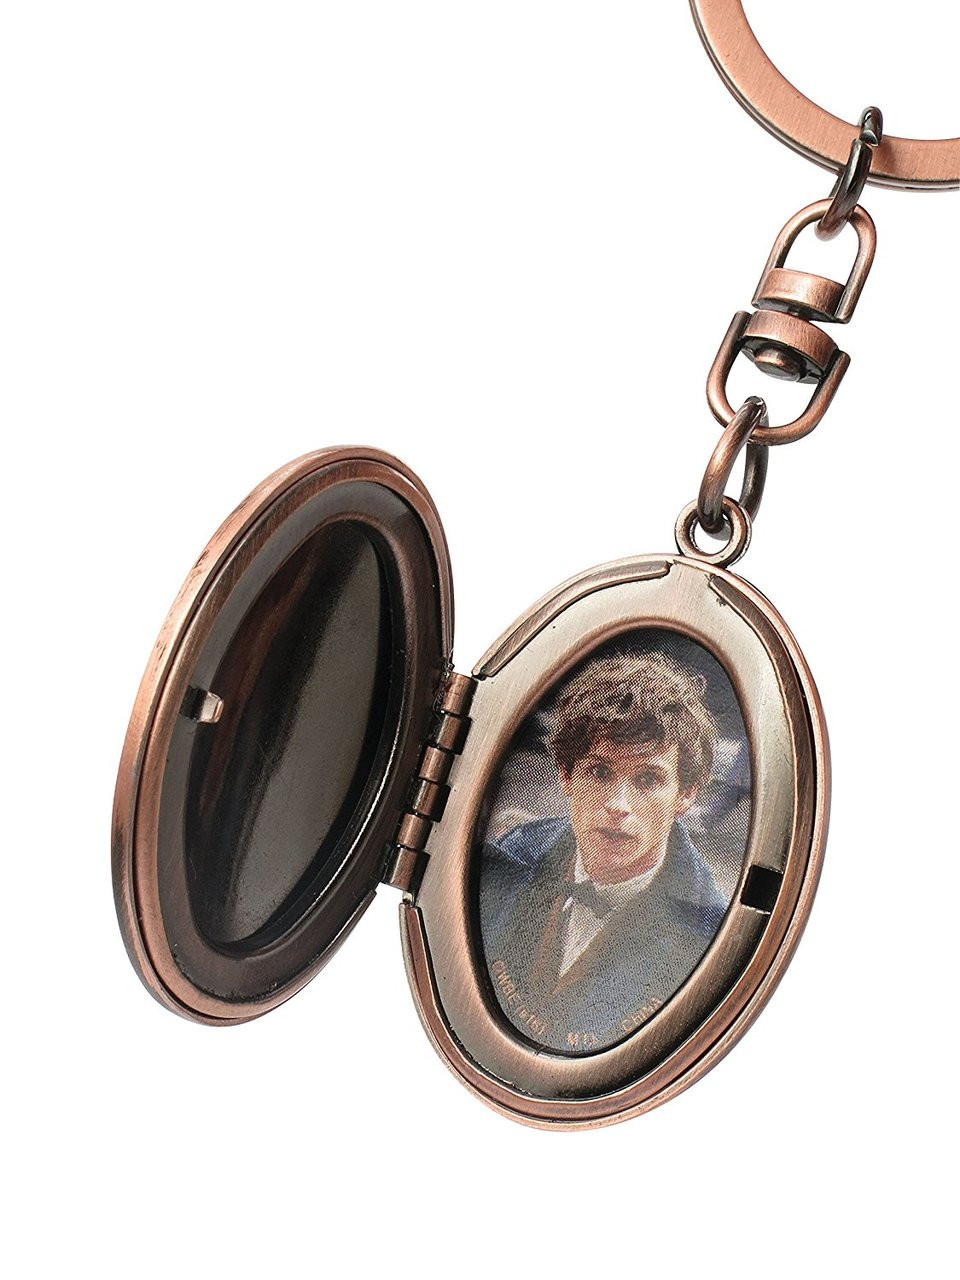 Metal Key Chain Fantastic Beast Picture Holder Pewter Key Ring New 48158